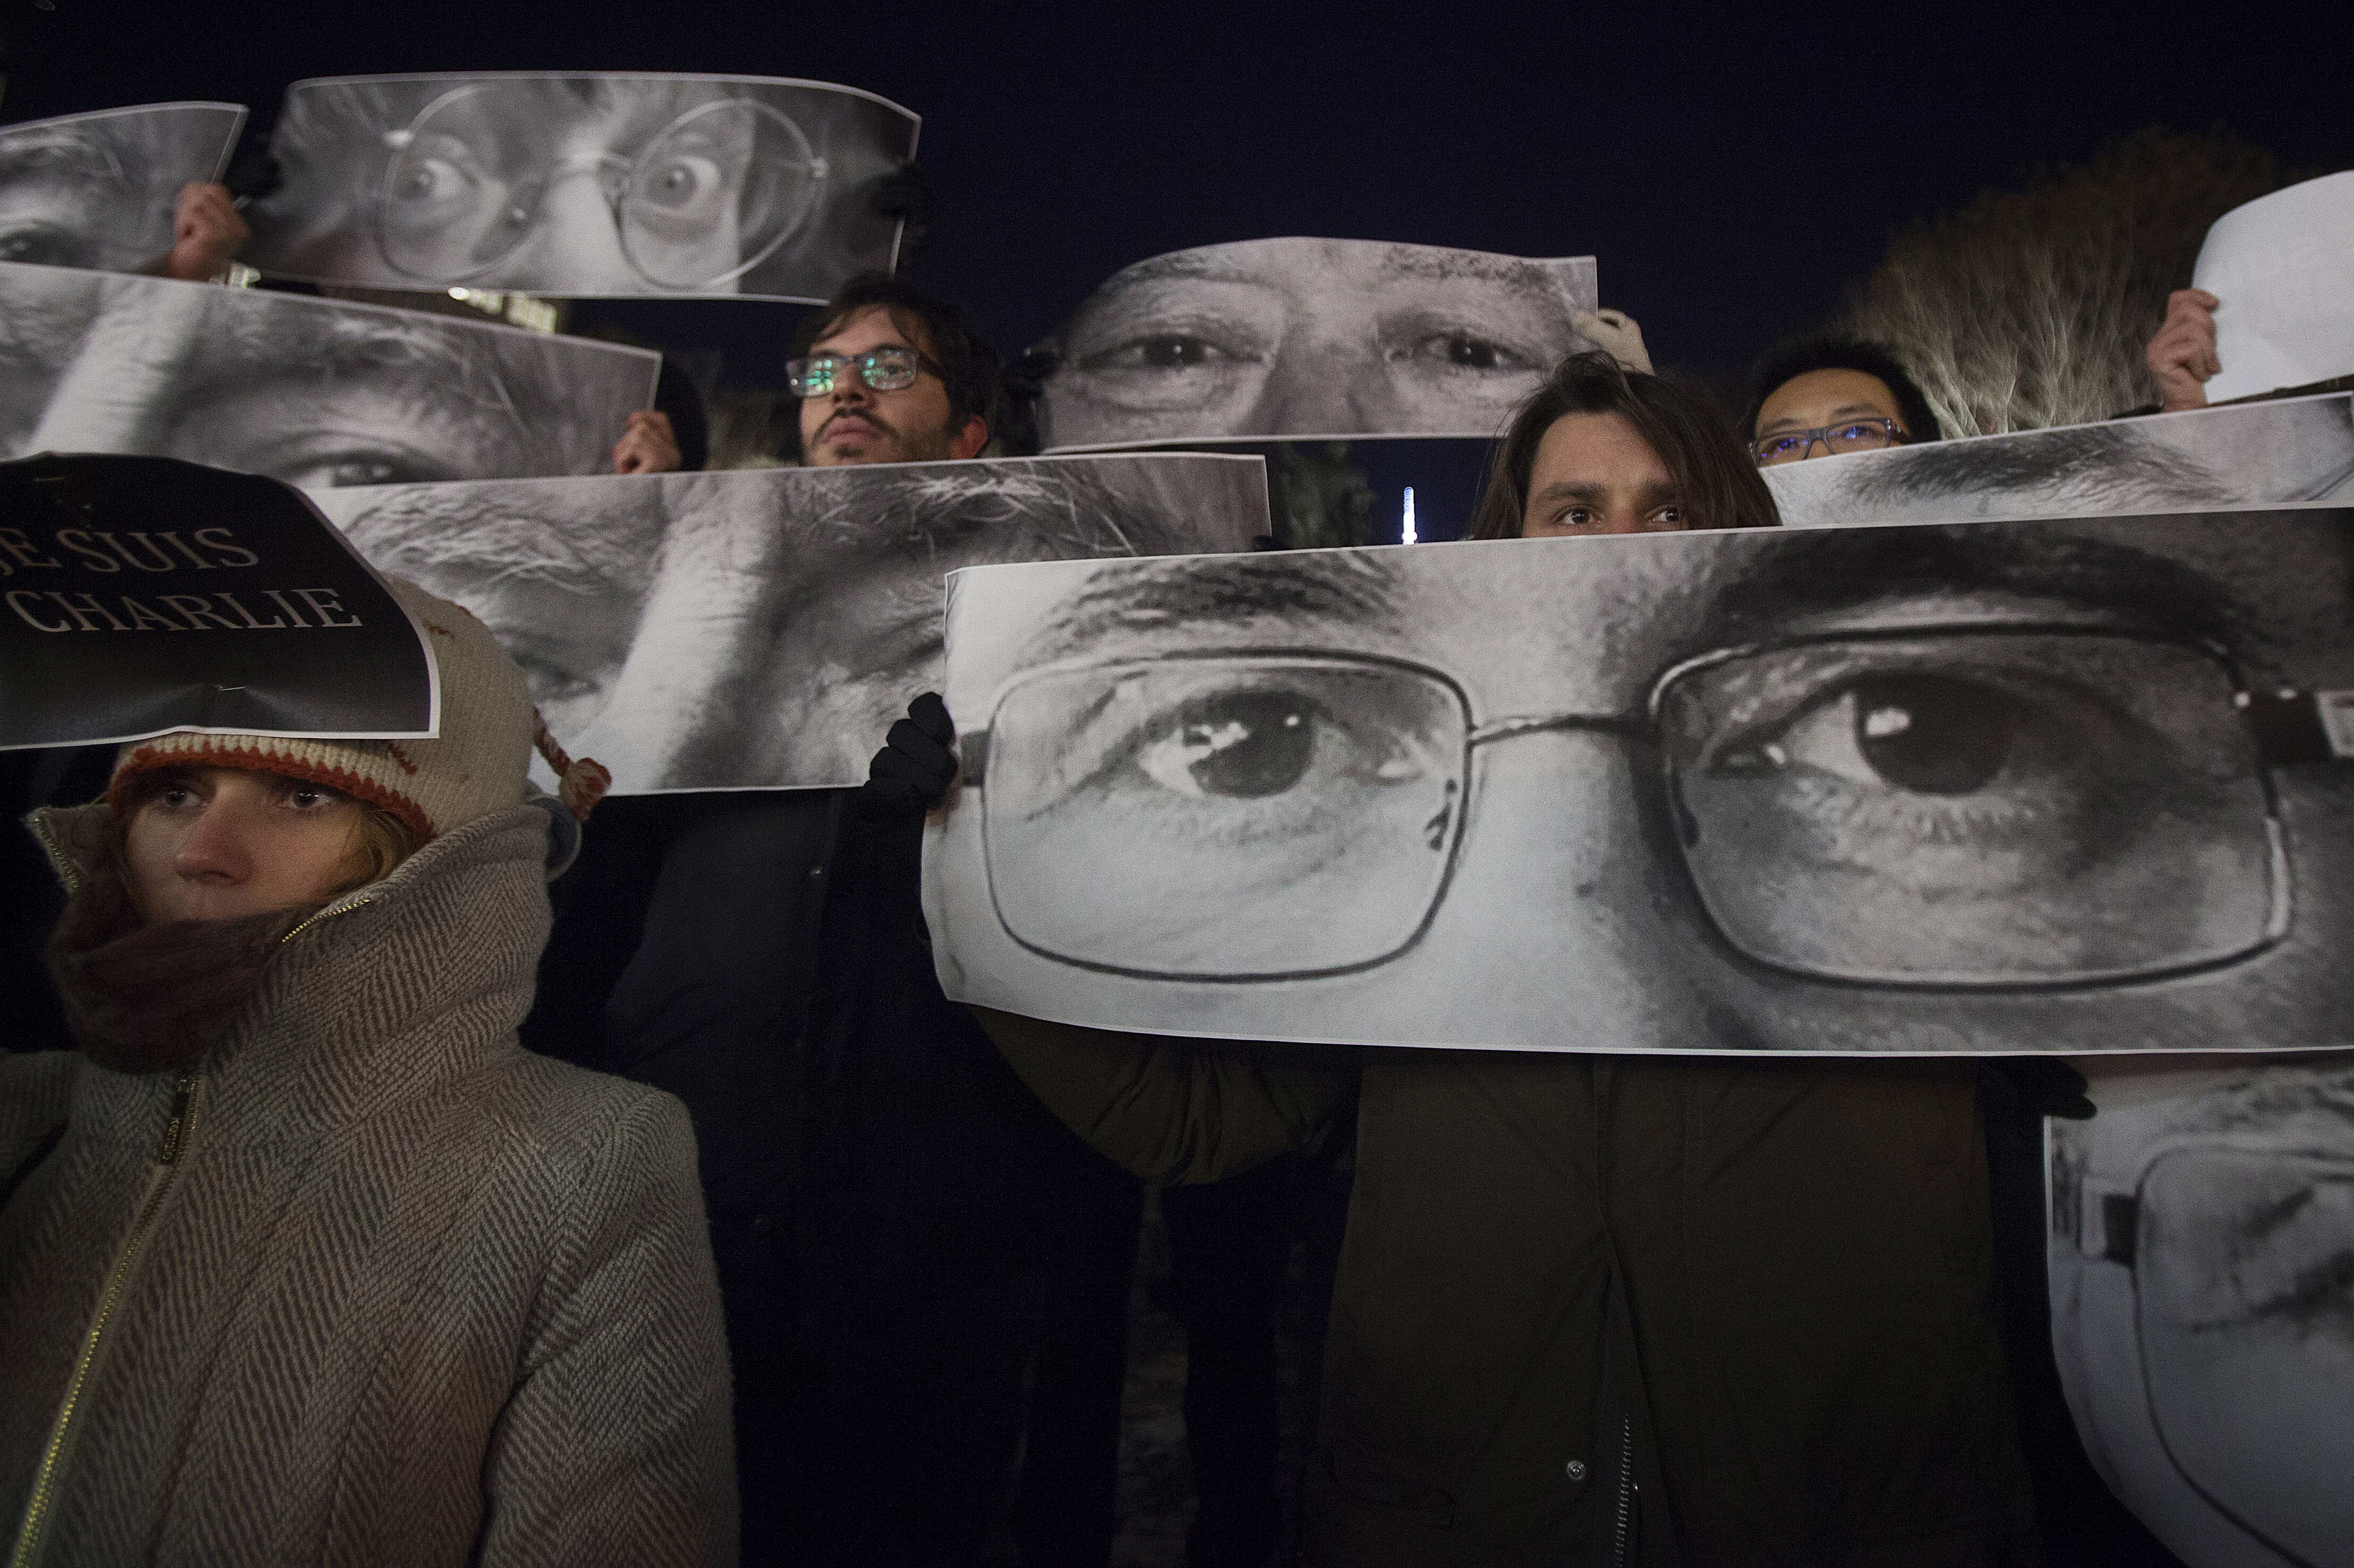 People hold up posters, which include Charlie Hebdo Editor Stephane Charbonnier (front), a cartoonist known as Charb, and Jean Cabut (back L), a cartoonist known as Cabu, during a vigil to pay tribute to the victims of a shooting, by gunmen at the offices of weekly satirical magazine Charlie Hebdo in Paris, in the Manhattan borough of New York January 7, 2015. Hooded gunmen stormed the Paris offices of the weekly satirical magazine known for lampooning Islam and other religions, shooting dead at least 12 people, including two police officers, in the worst militant attack on French soil in decades. REUTERS/Carlo Allegri (UNITED STATES - Tags: CIVIL UNREST CRIME LAW)